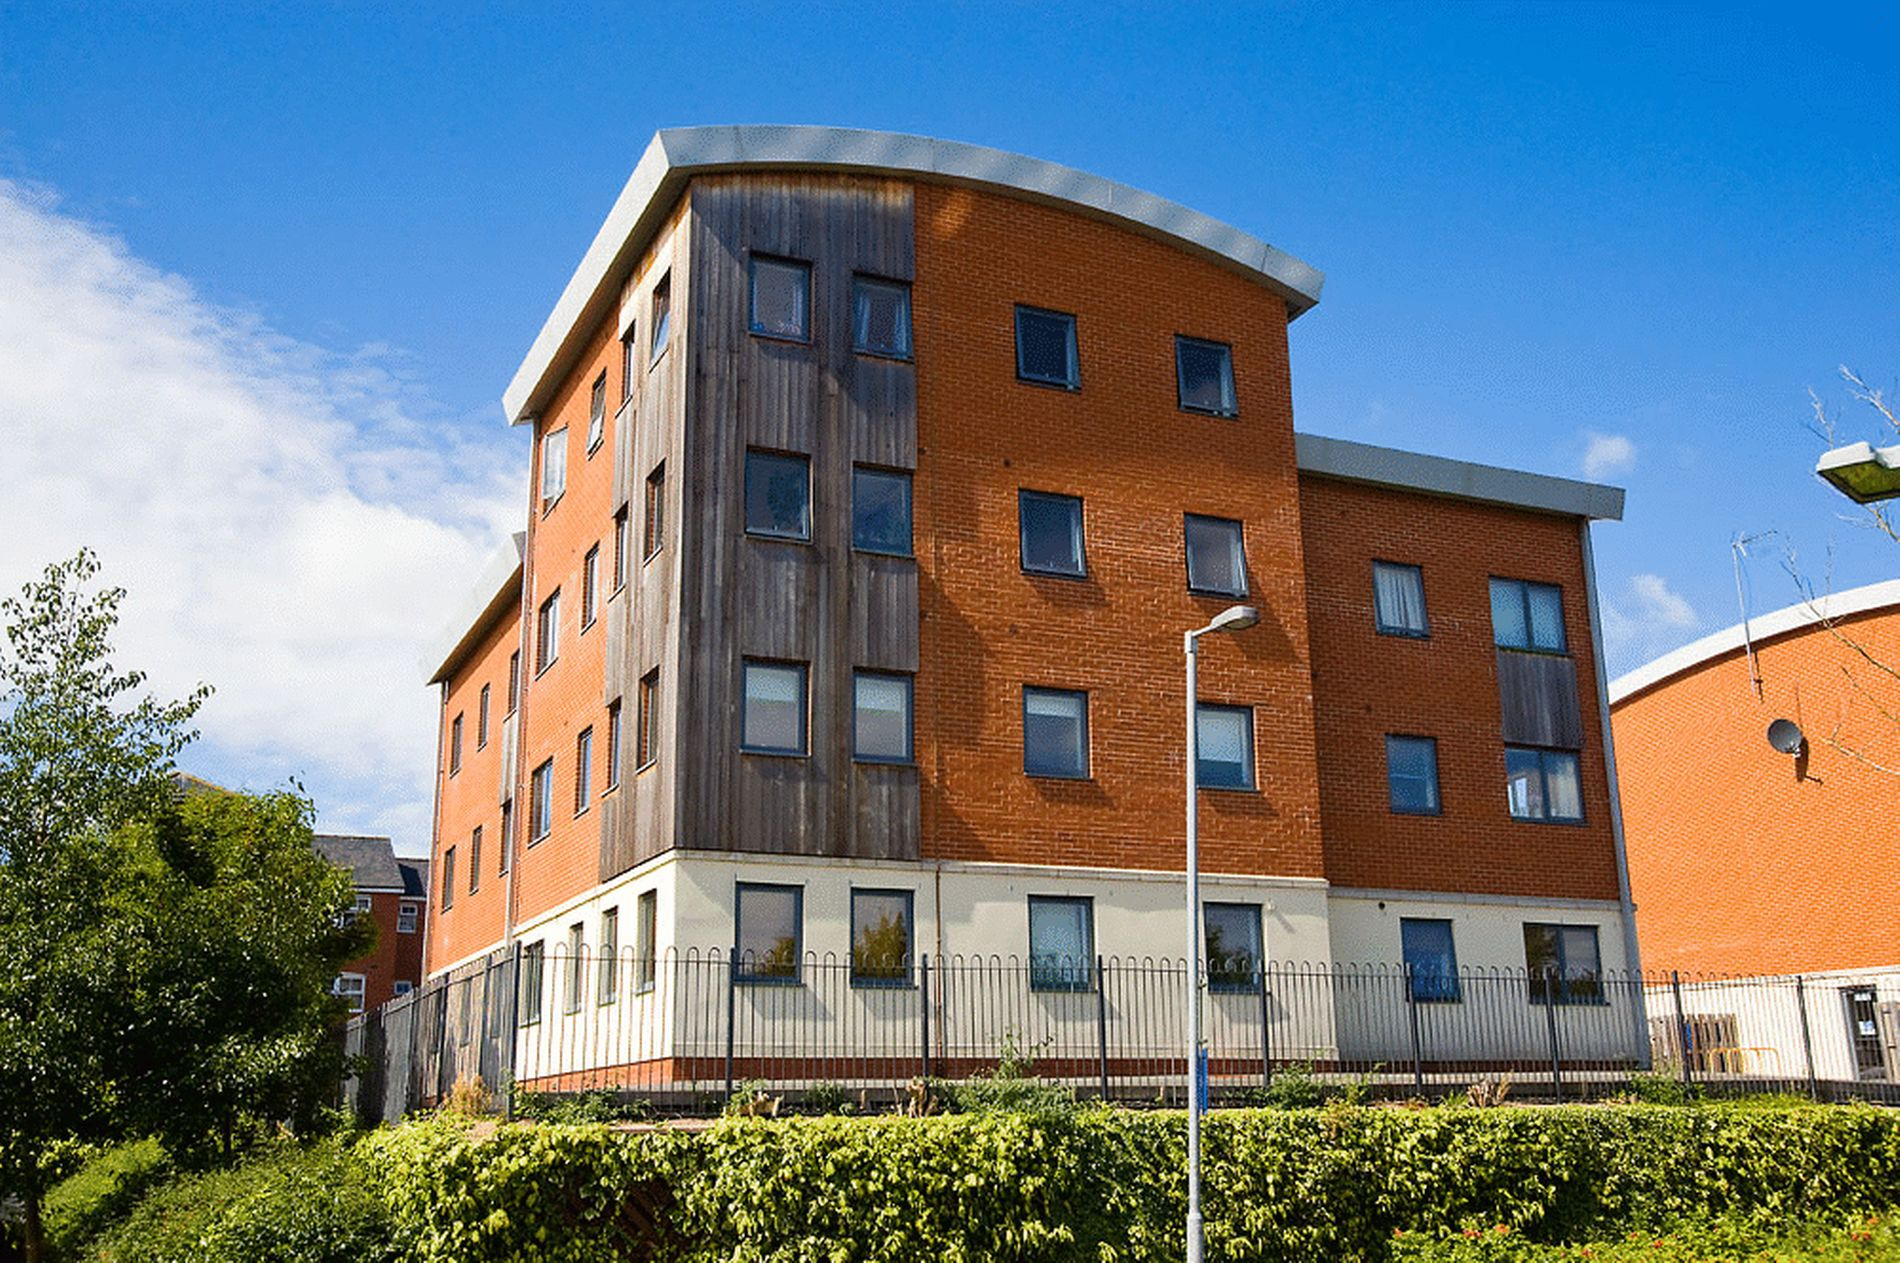 2 Bedrooms Flat for sale in Pomona Place, Whitecross, Hereford, HR4 0EF